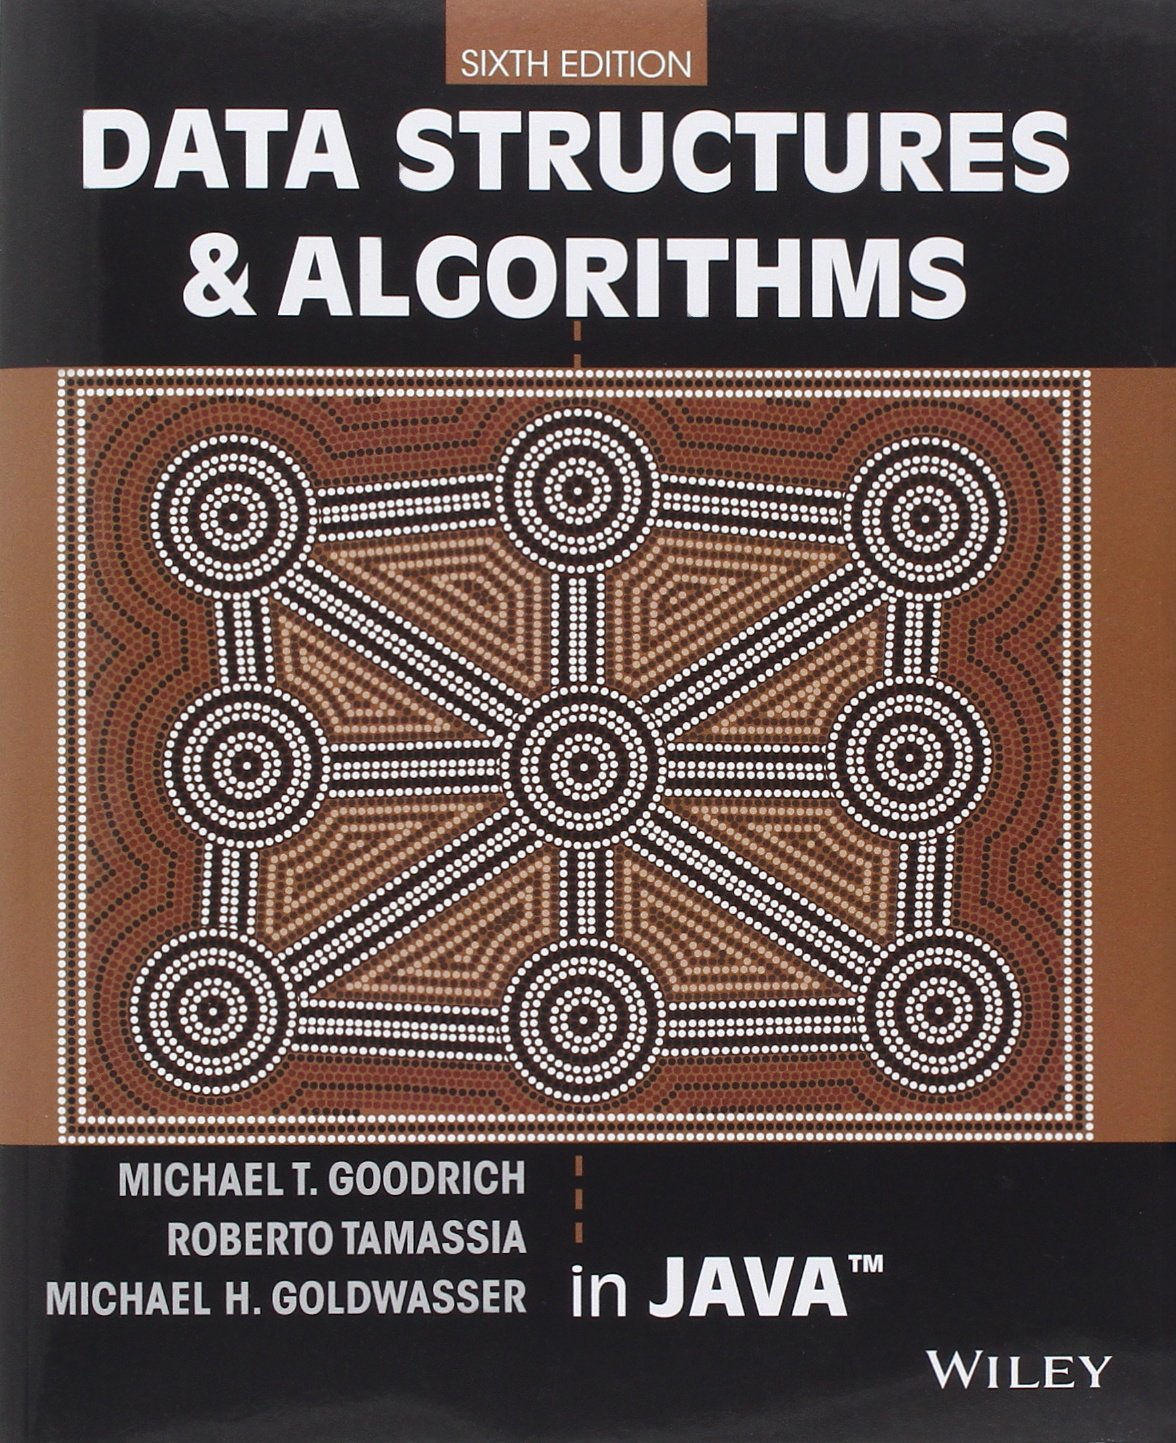 Data structures and algorithms in java michael t goodrich roberto data structures and algorithms in java michael t goodrich roberto tamassia michael h goldwasser 9781118771334 books amazon baditri Image collections